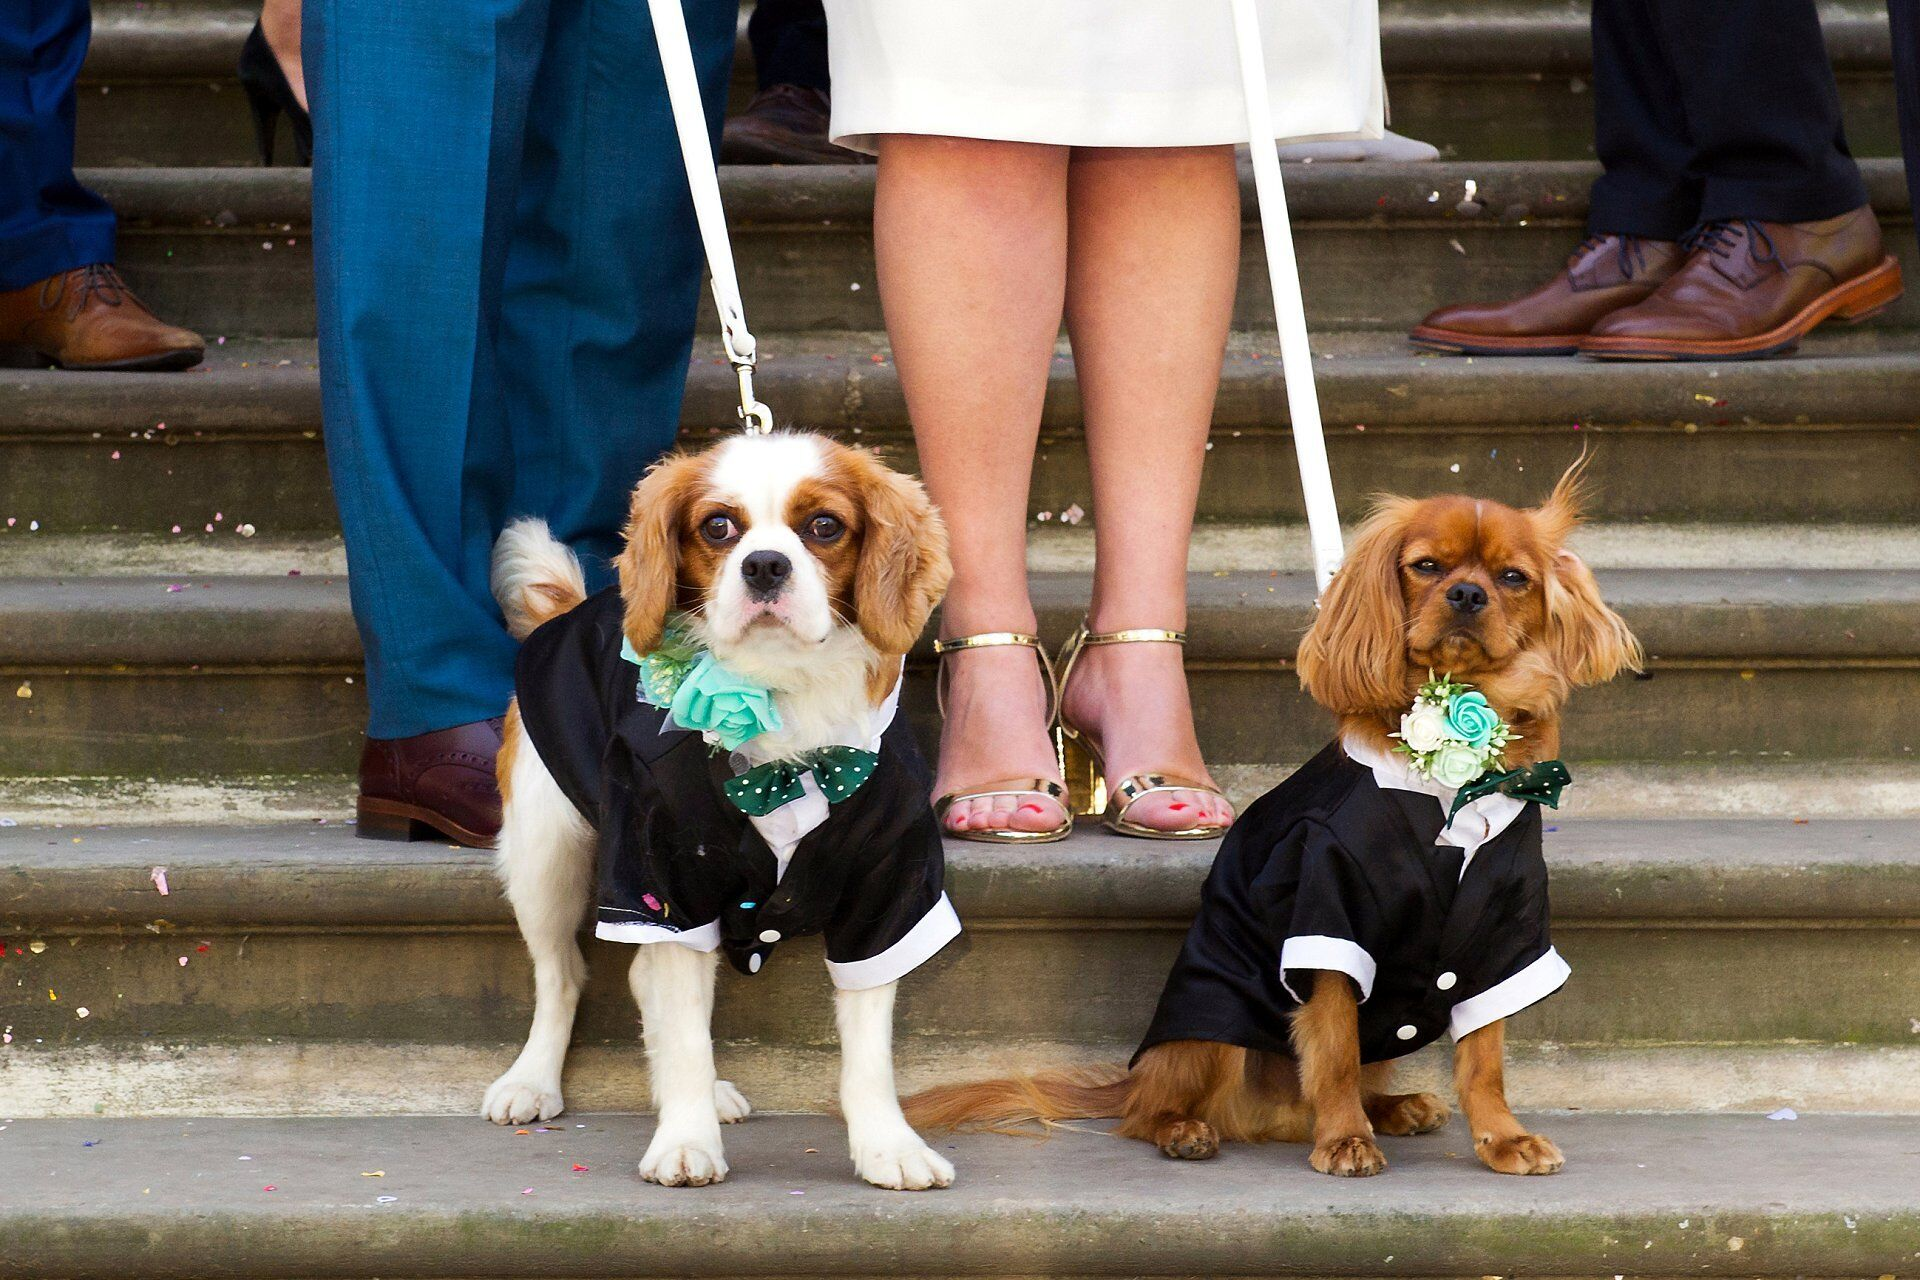 old marylebone town hall wedding photographer emma duggan loves weddings and dogs especially these two adorable cavalier king charles spaniel puppies (marylebone room wedding photography)